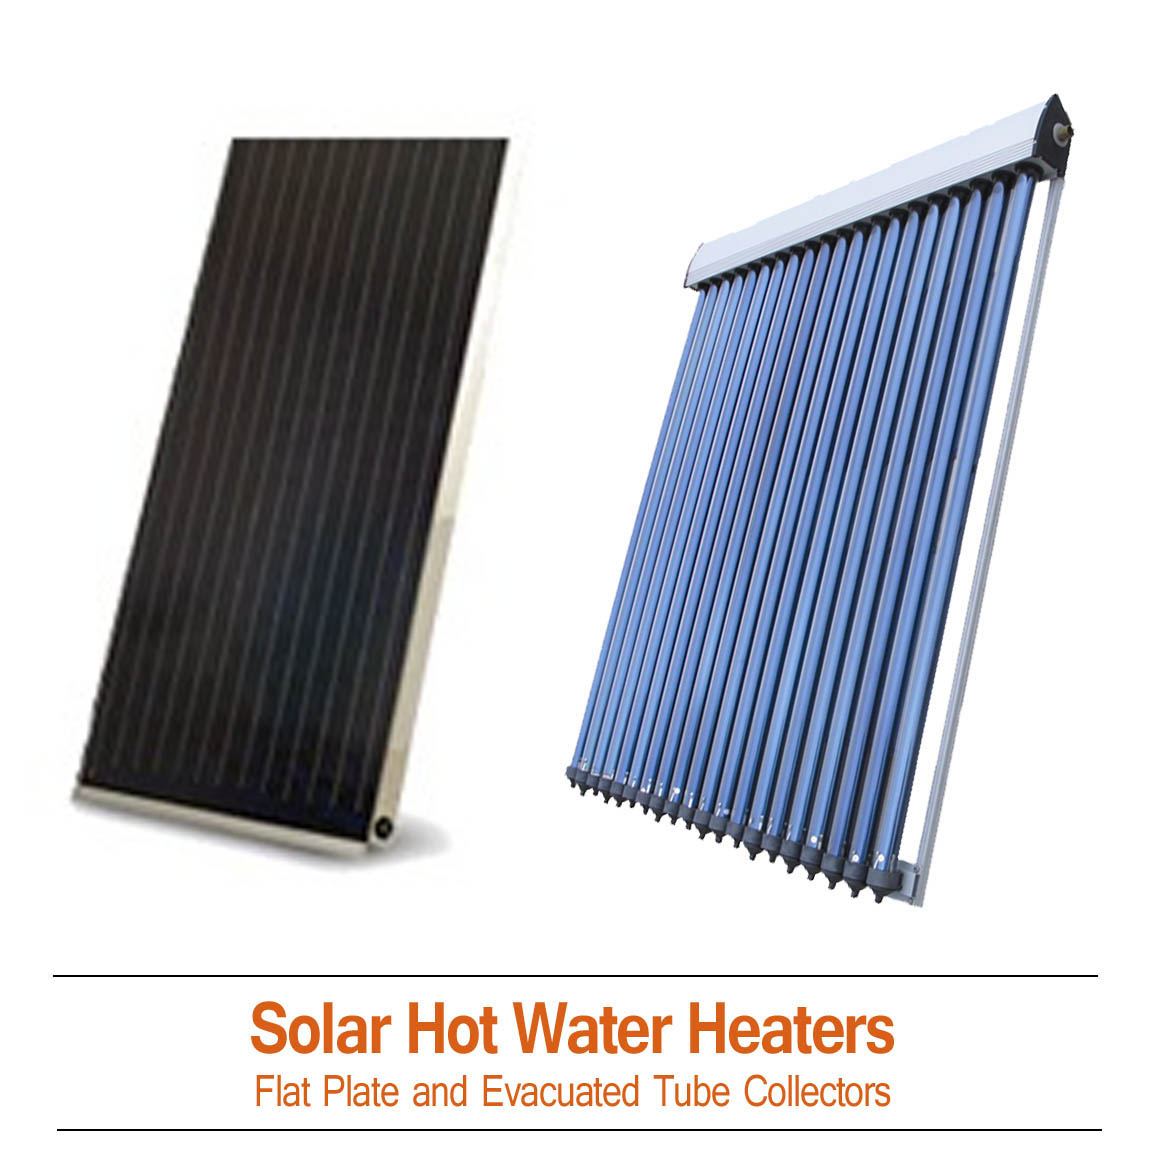 Solar Hot Water Heaters